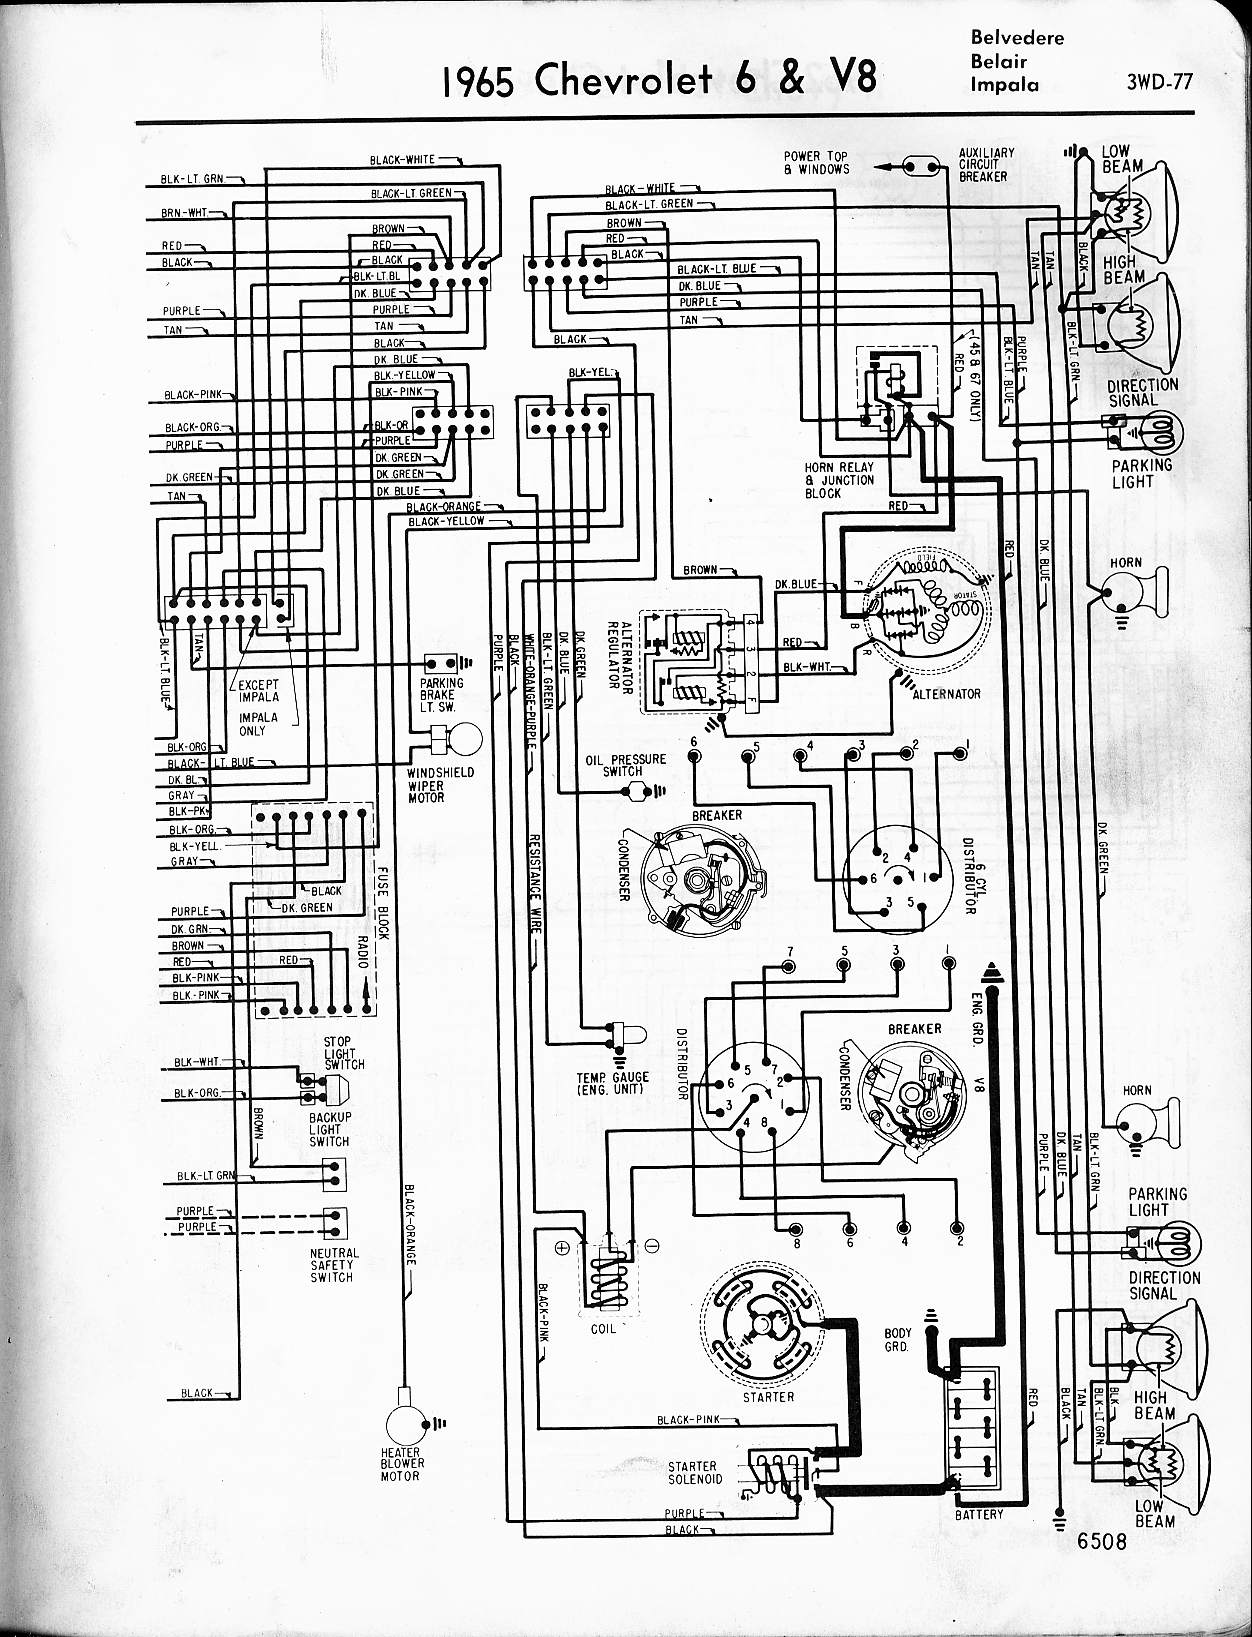 57 - 65 chevy wiring diagrams 1966 impala convertible wiring diagram 1966 ford convertible wiring diagram schematic